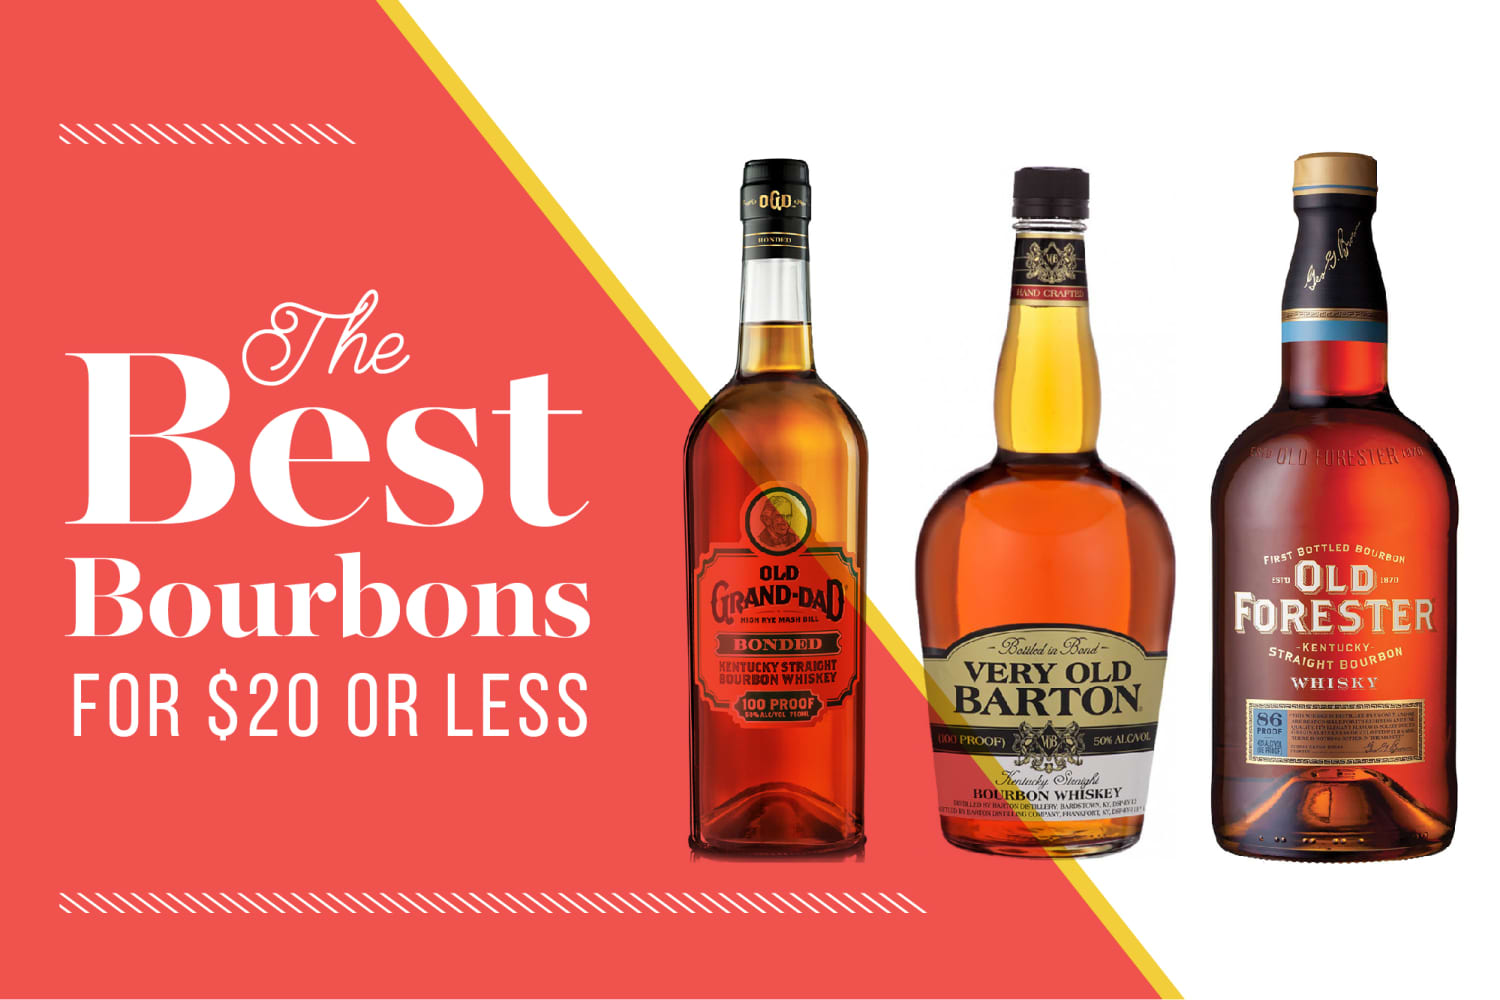 The Best Bourbons for $20 and Under